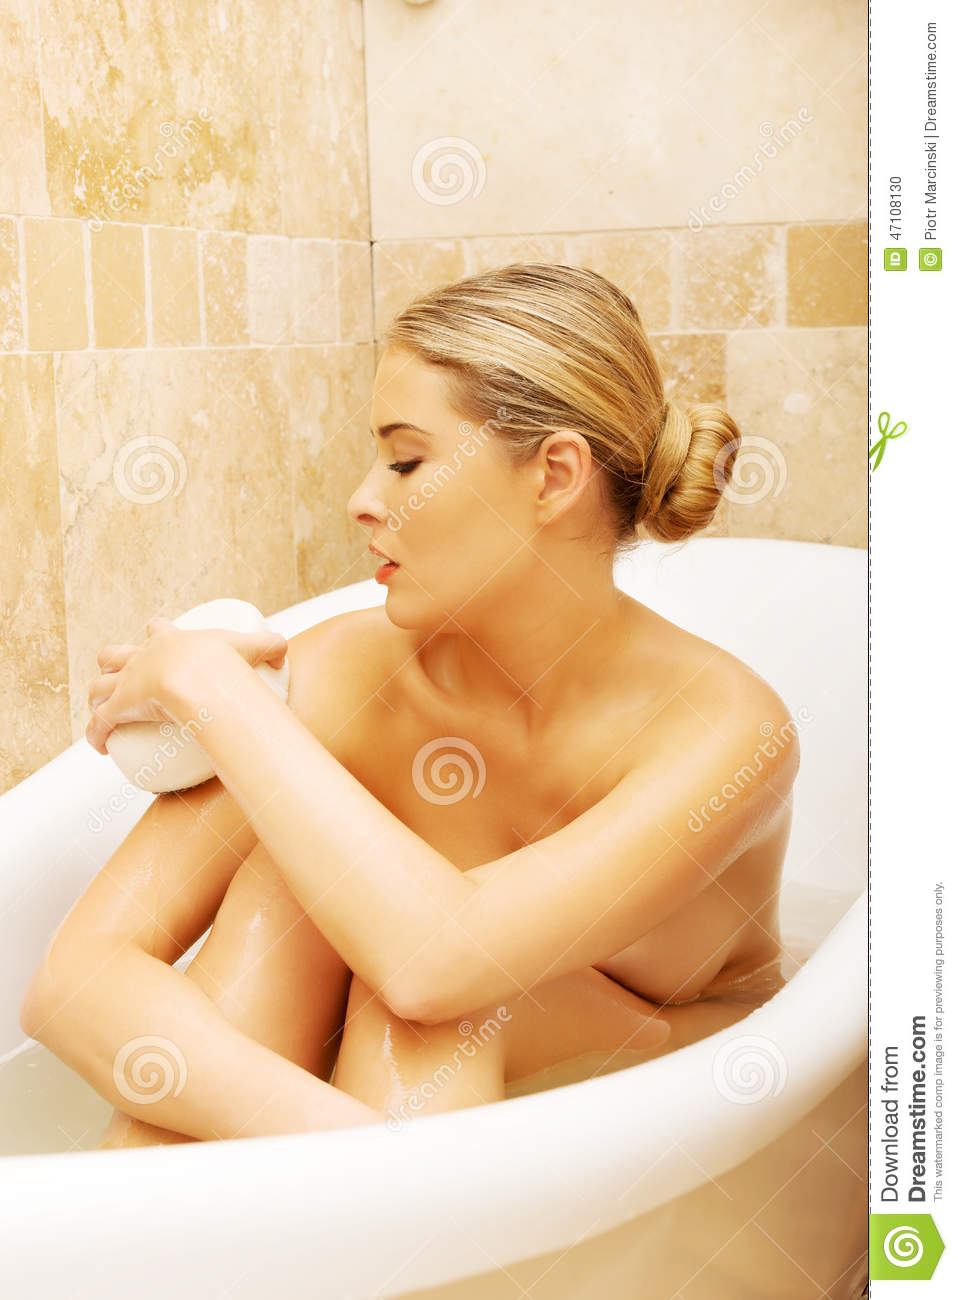 Woman relaxing in a bath stock photo. Image of beautycare ...